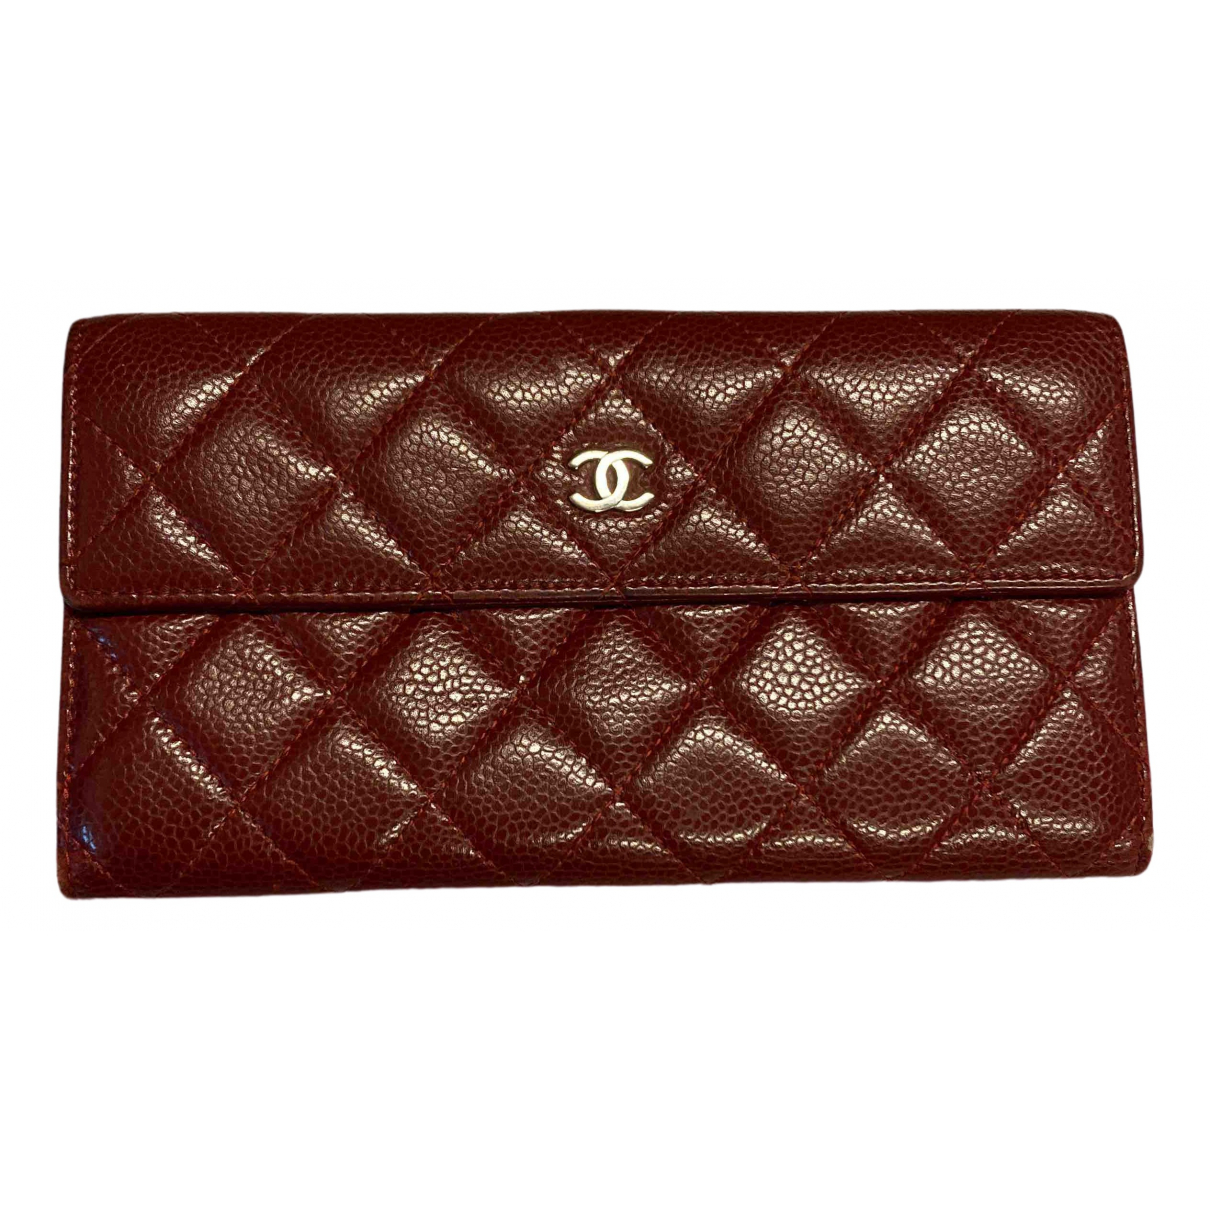 Chanel Timeless/Classique Burgundy Leather Purses, wallet & cases for Women \N